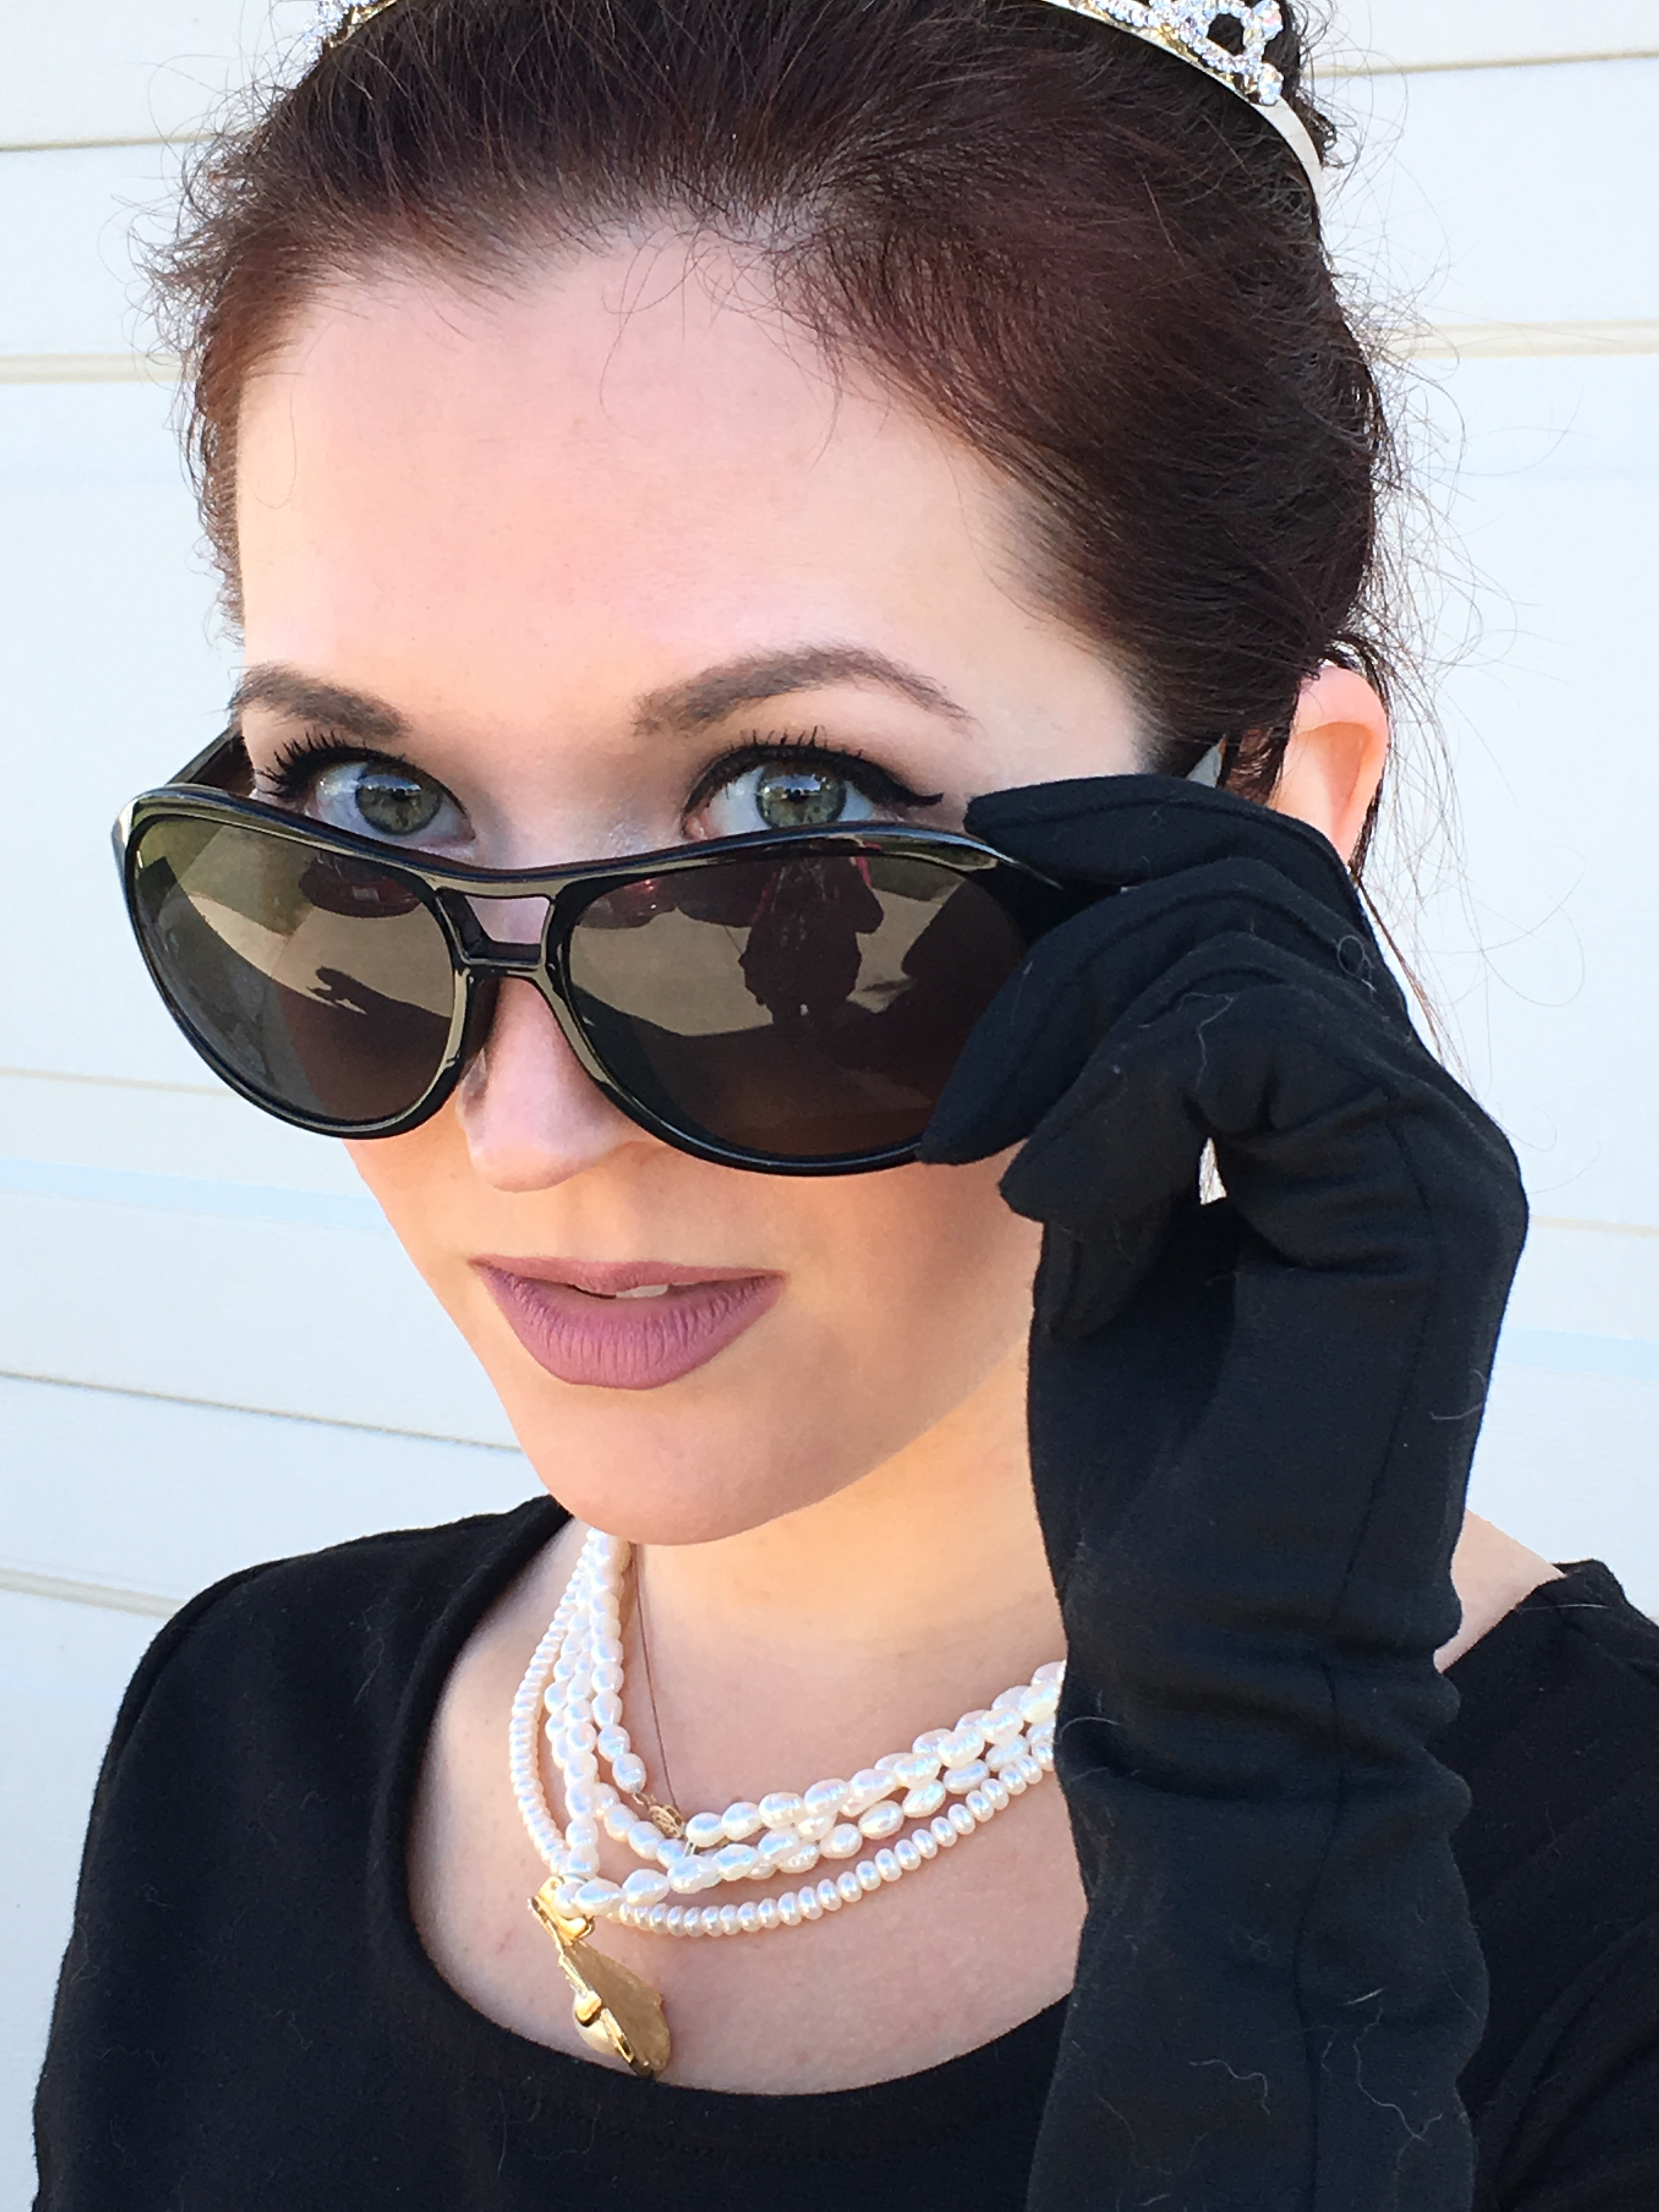 Steal Audrey Hepburn's style in Breakfast at Tiffany's with this last minute Halloween costume. Grab a black dress, gloves, pearls, and tiara for the look.